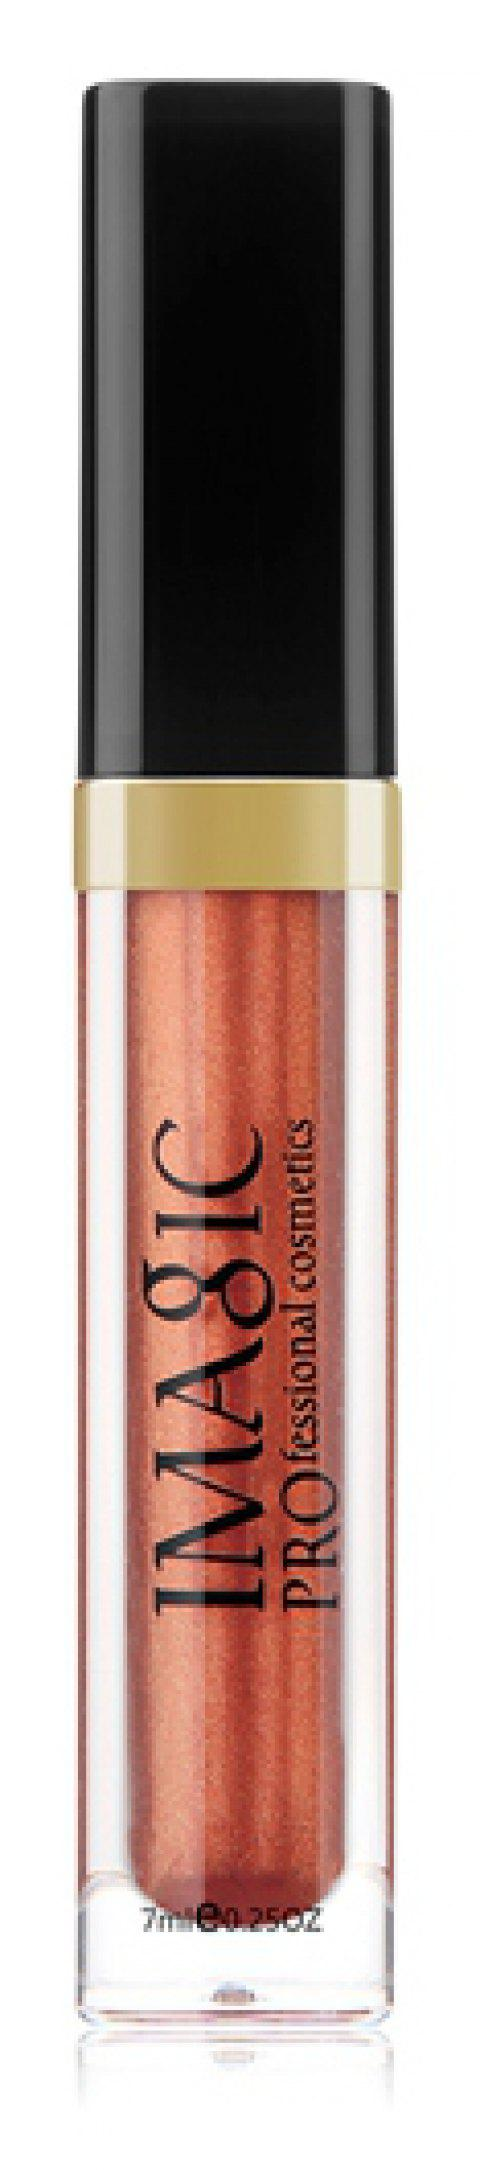 IMagic 8 Non Staining Non Stick Lasting Moisturizing and Moisturizing Lip Glazes - 004